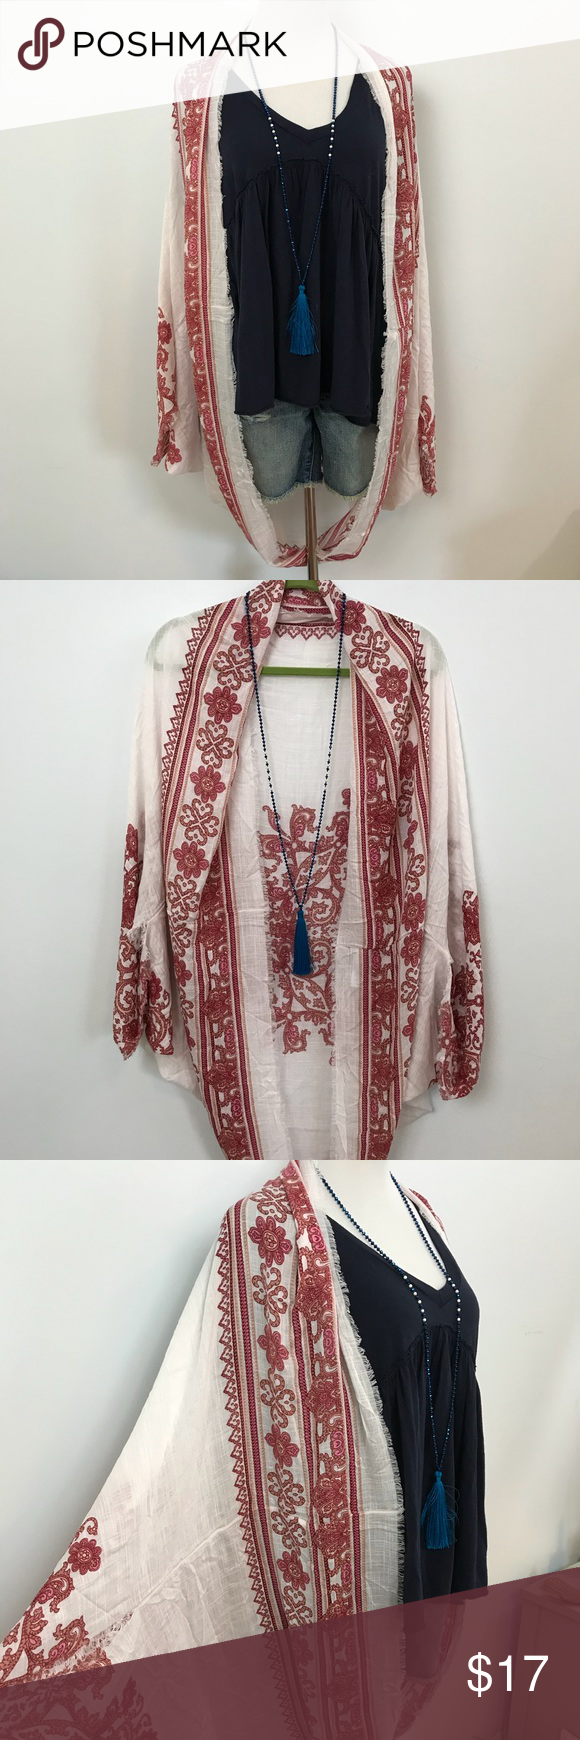 AEO Cocoon Kimono Festival Shrug Red White Print American Eagle Outfitters Printed Cocoon Kimono red and white. Festival Shawl Shrug with raw edges and a Gypsy feeling to it. Vacation must have, easy to pack and throw on in a moment and then fold away. Great for beach honeymoon or exploring Europe. It will keep your warm on any air plane or sailboat. And of course, a Coachella MUST. NWOT last pic is outfit ideas. American Eagle Outfitters Accessories Scarves & Wraps #beachhoneymoonclothes AEO Co #beachhoneymoonclothes